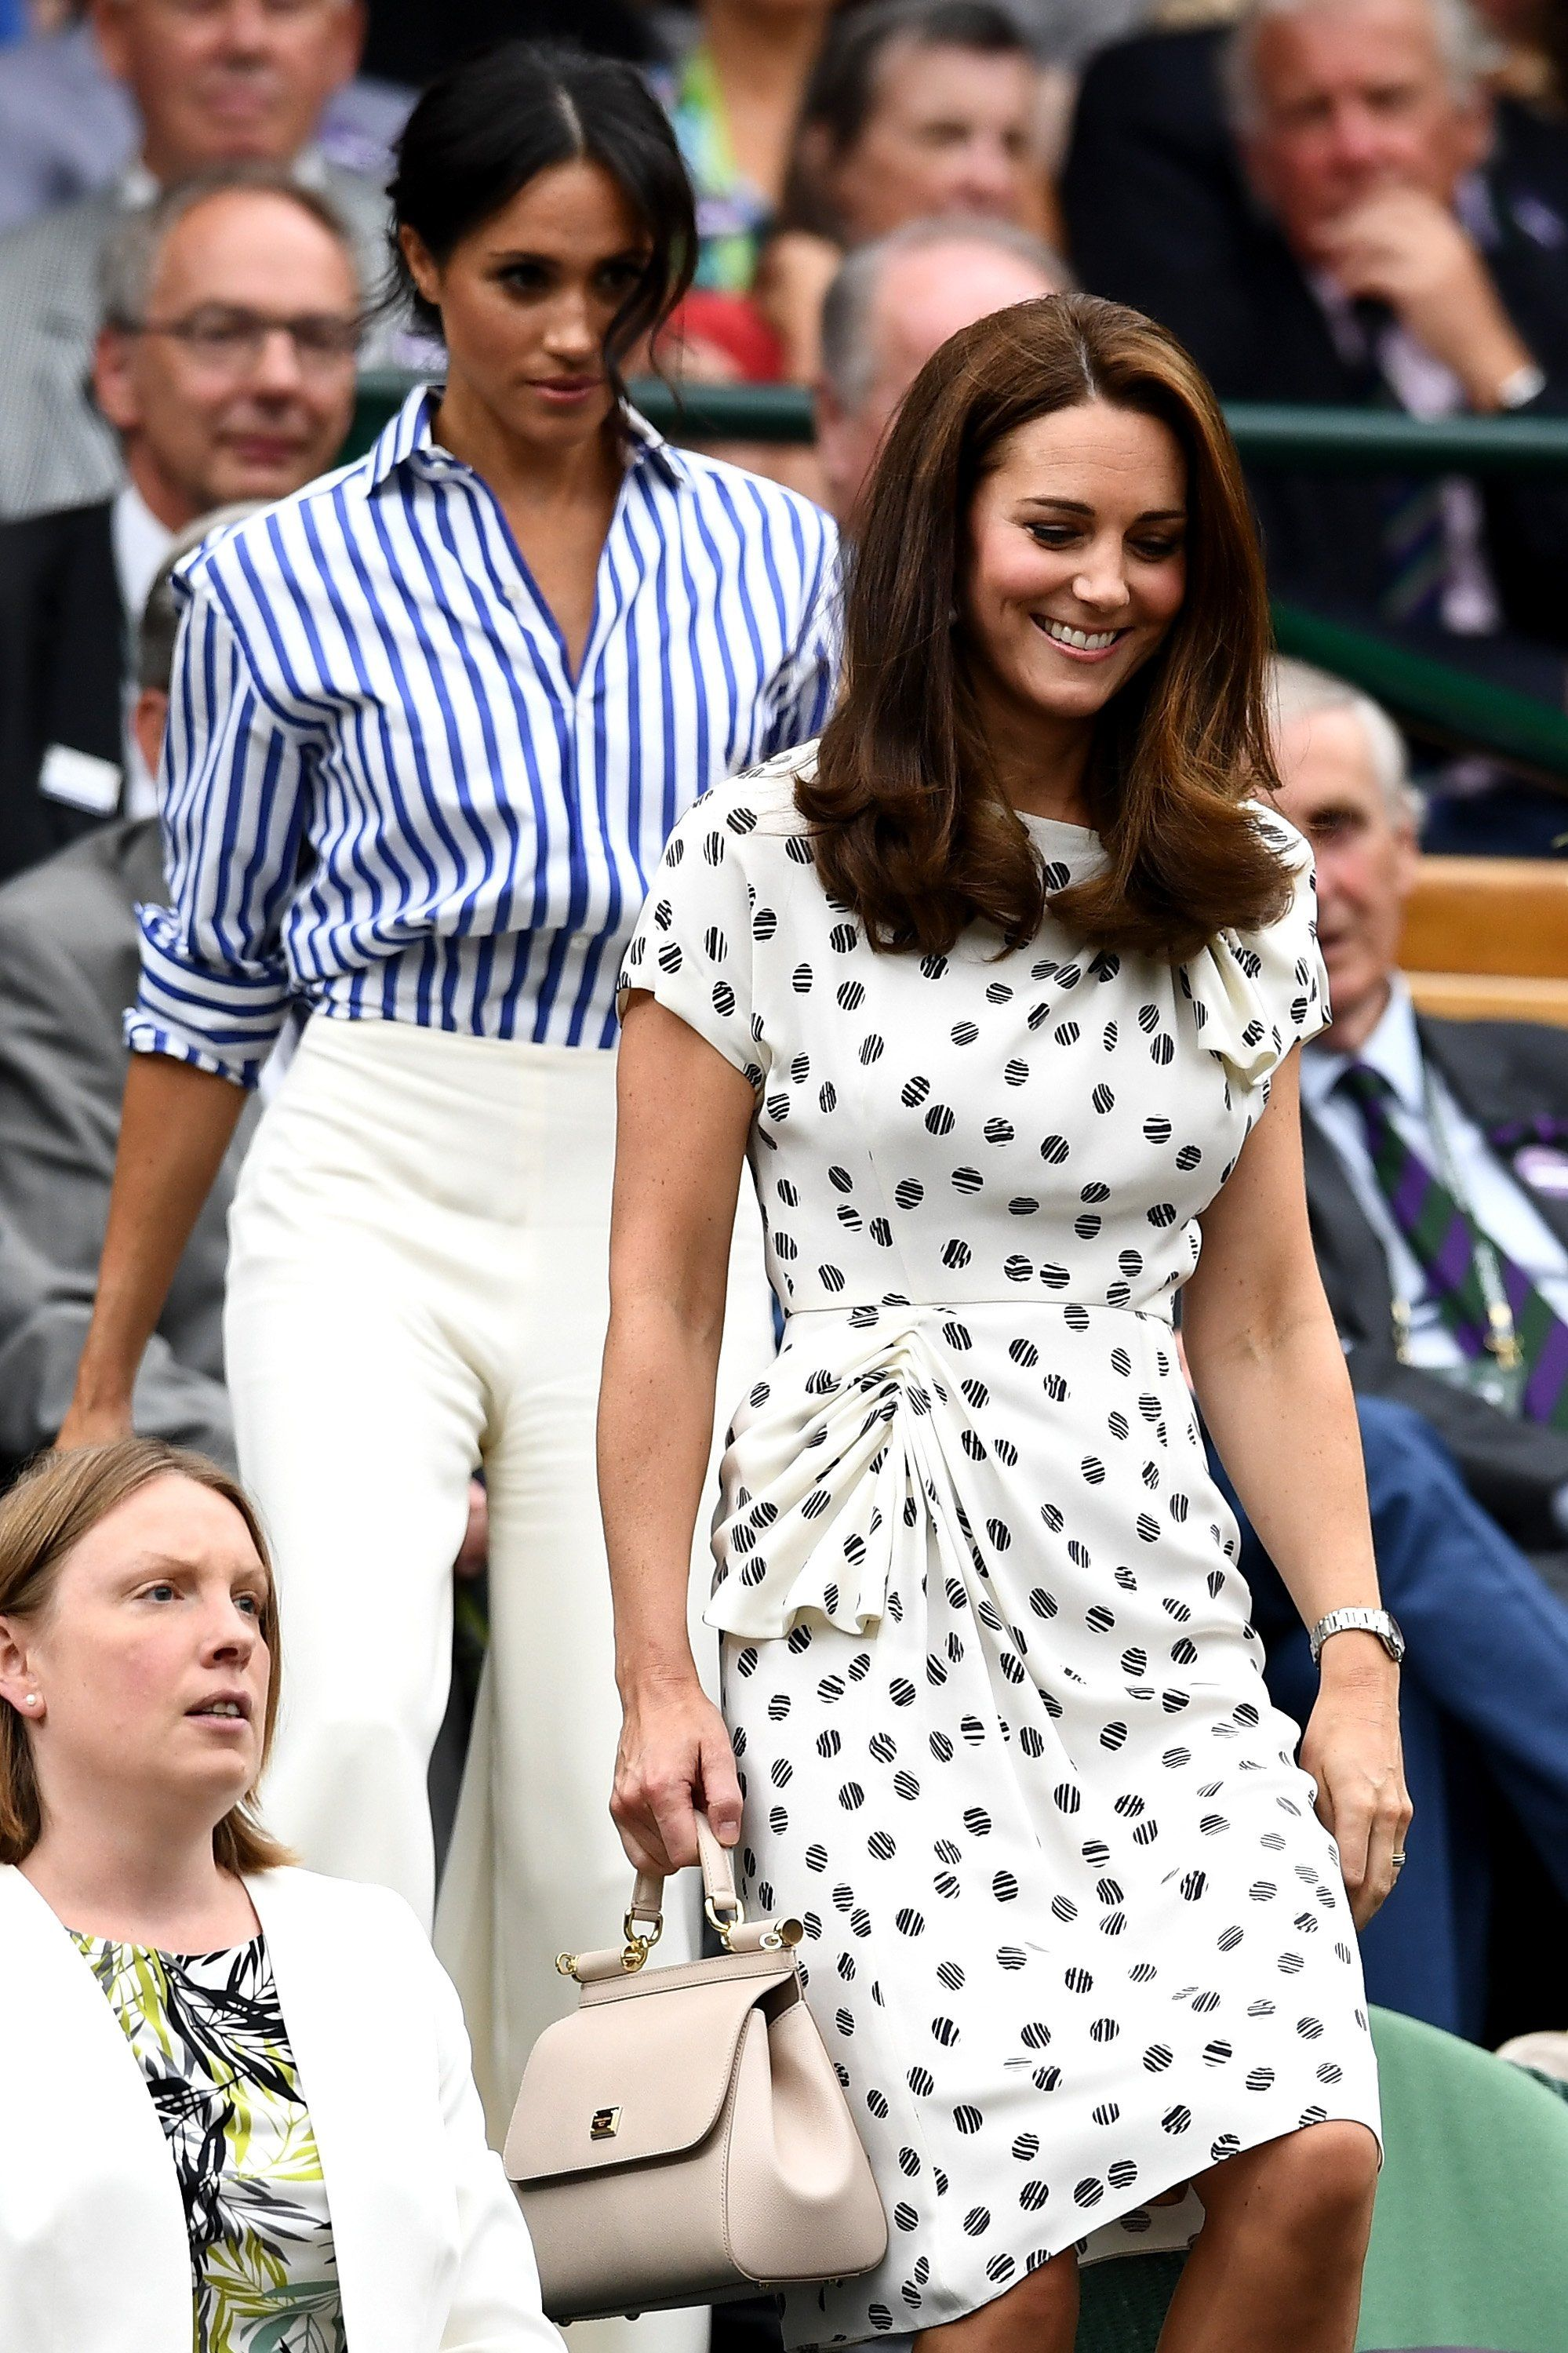 Meghan Markle Found The Preppiest Outfit To Wear At Wimbledon And She Looks Stunning With Images Kate Middleton Outfits Kate Middleton Wimbledon Kate Middleton Dress